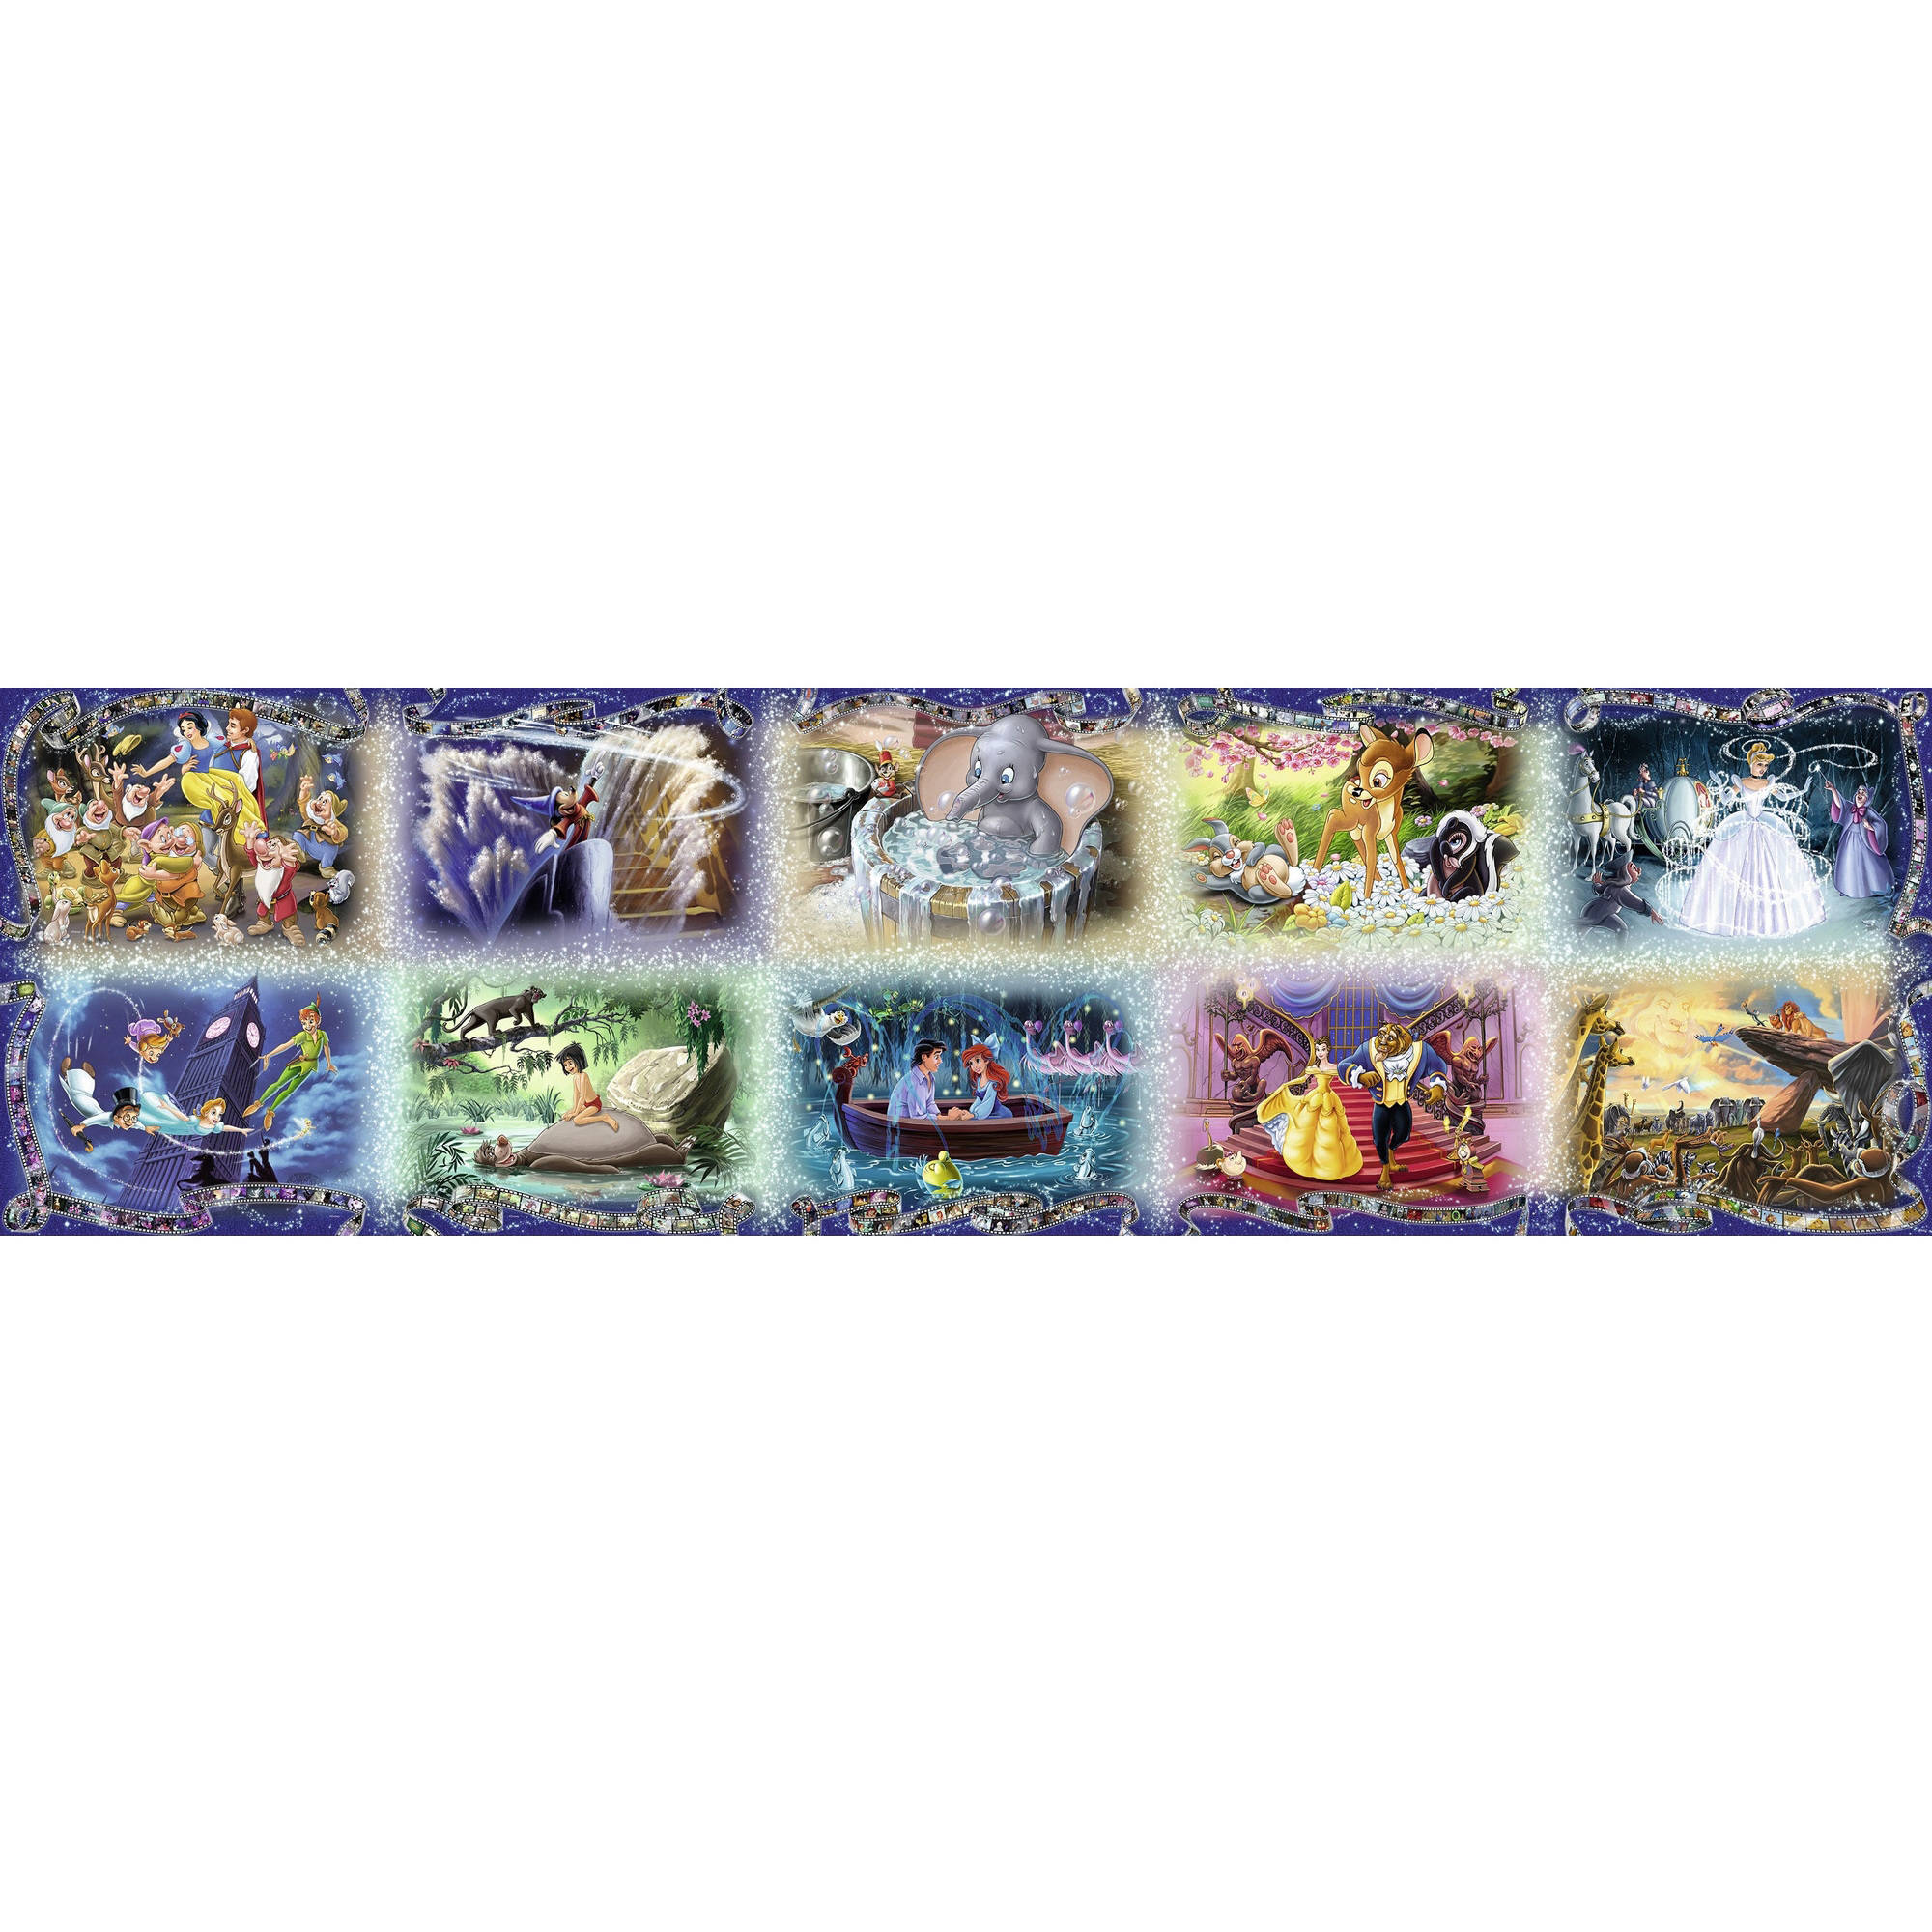 Ravensburger Memorable Disney Moments 40,320-Piece Puzzle by Ravensburger USA Inc